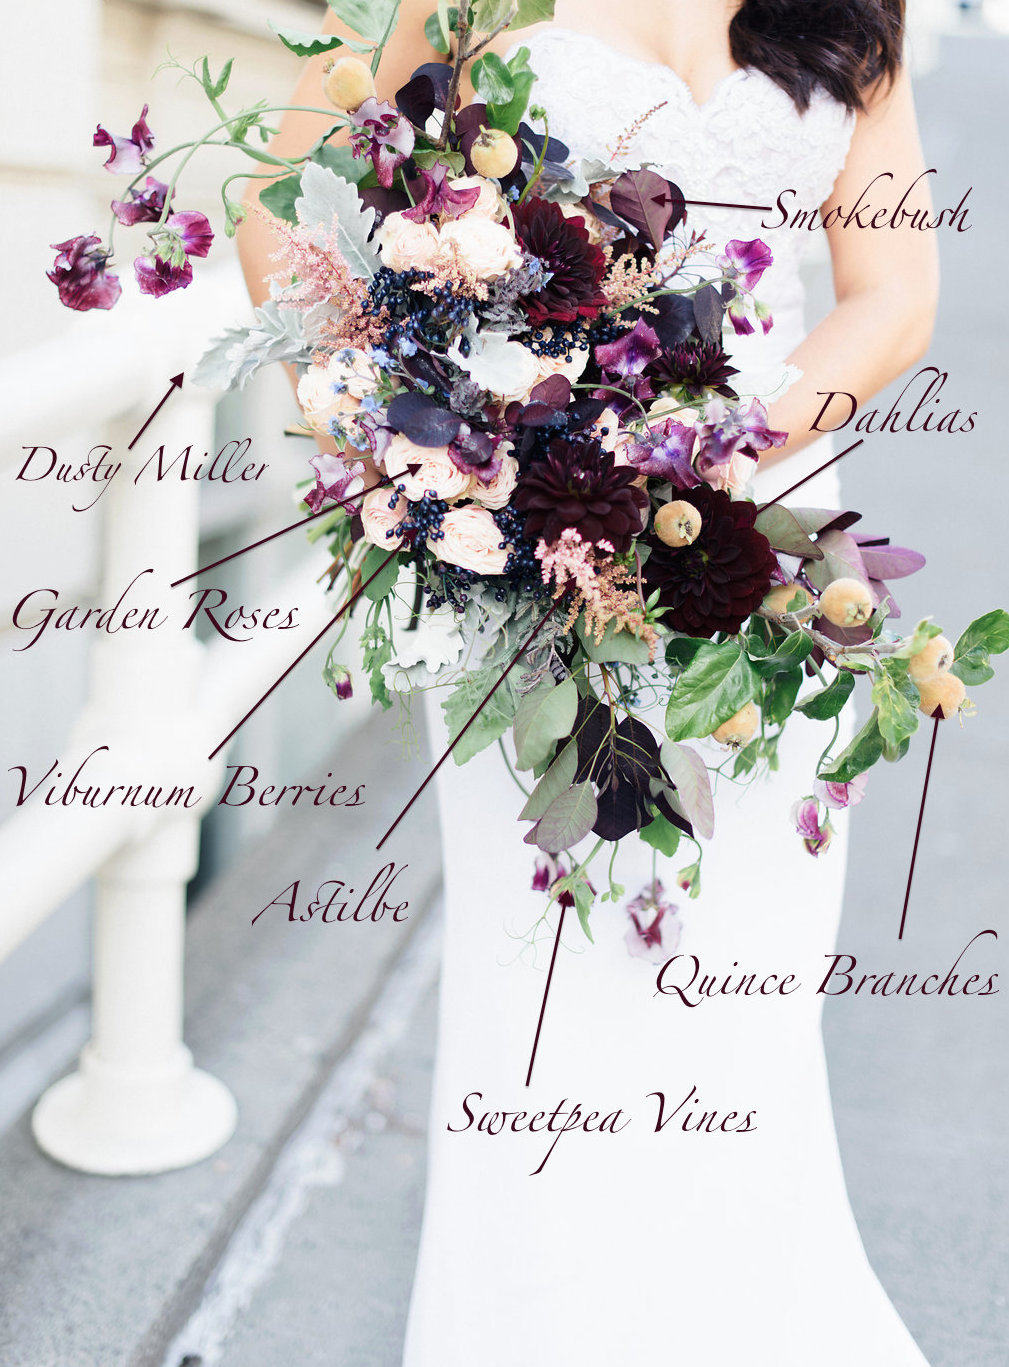 Fall flowers bridal bouquet recipe and bridal bouquet flowers of purple roses, dark dahlias, fruit branches, blooming clematis- Flora Nova Design Seattle